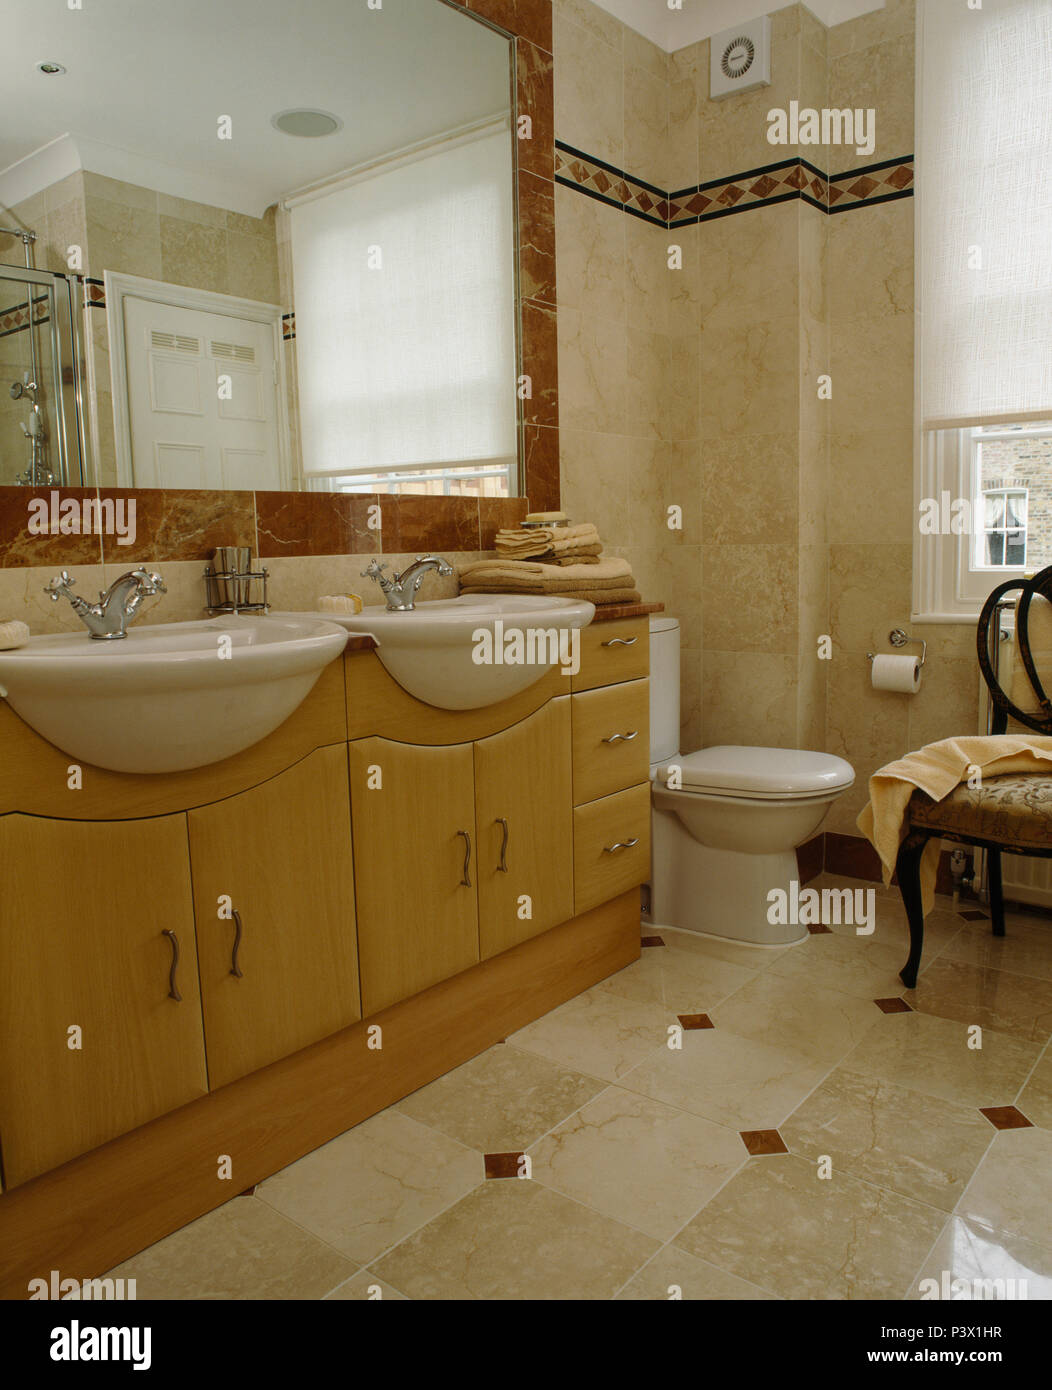 Large Mirror Above Pale Wood Vanity Unit With Double Basins In Marble Tiled Bathroom Stock Photo Alamy